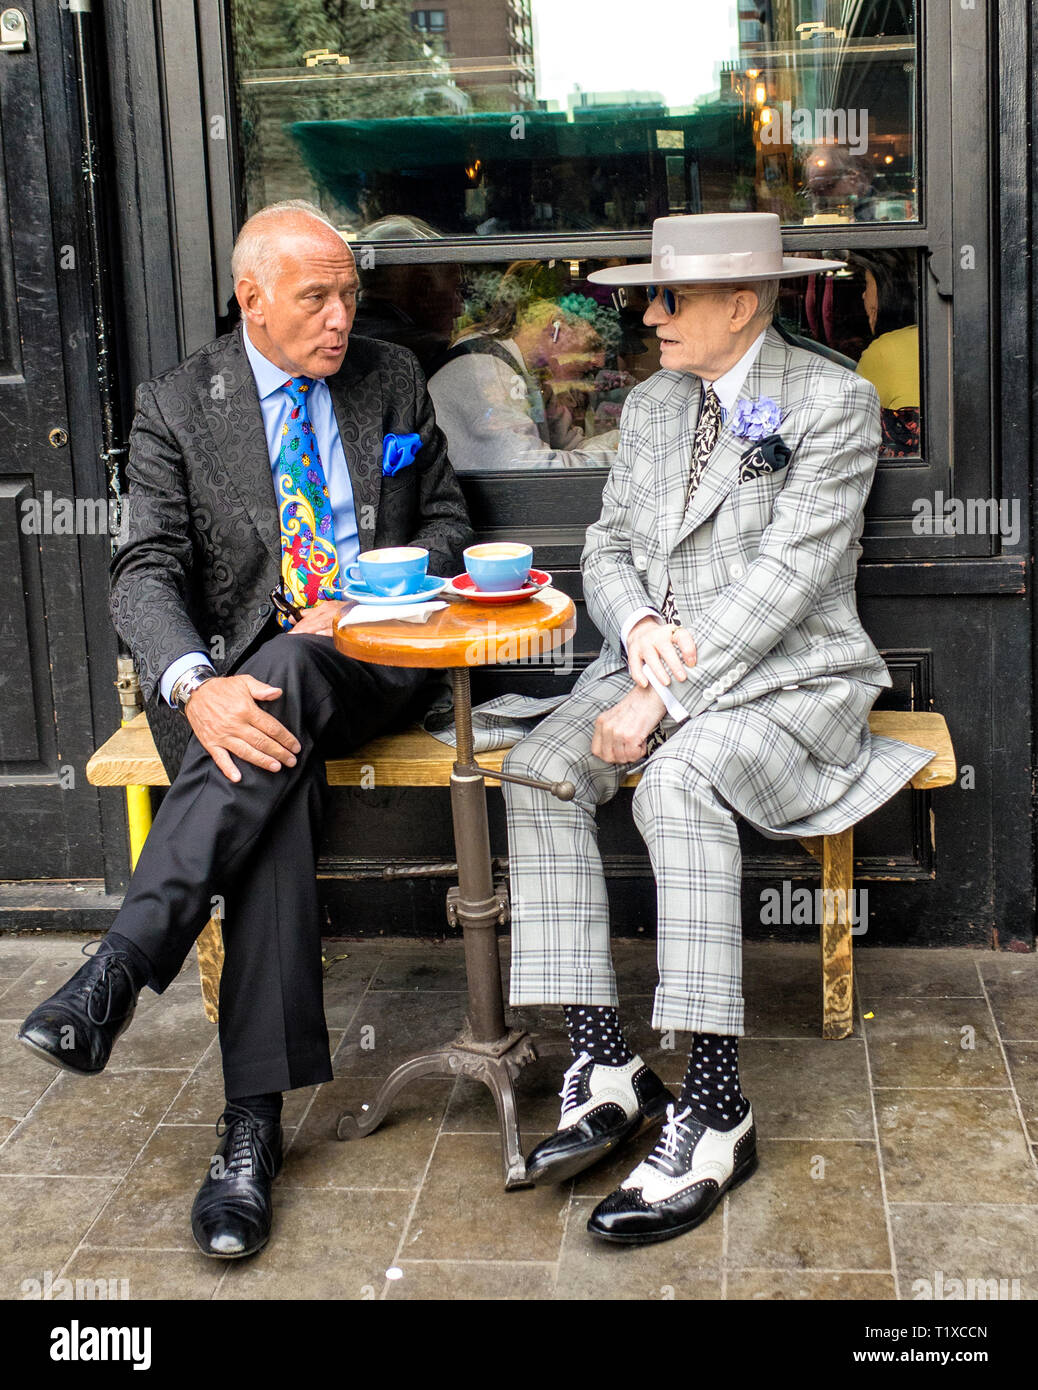 George Skeggs, Soho Artist sitting outside my place cafe - Stock Image